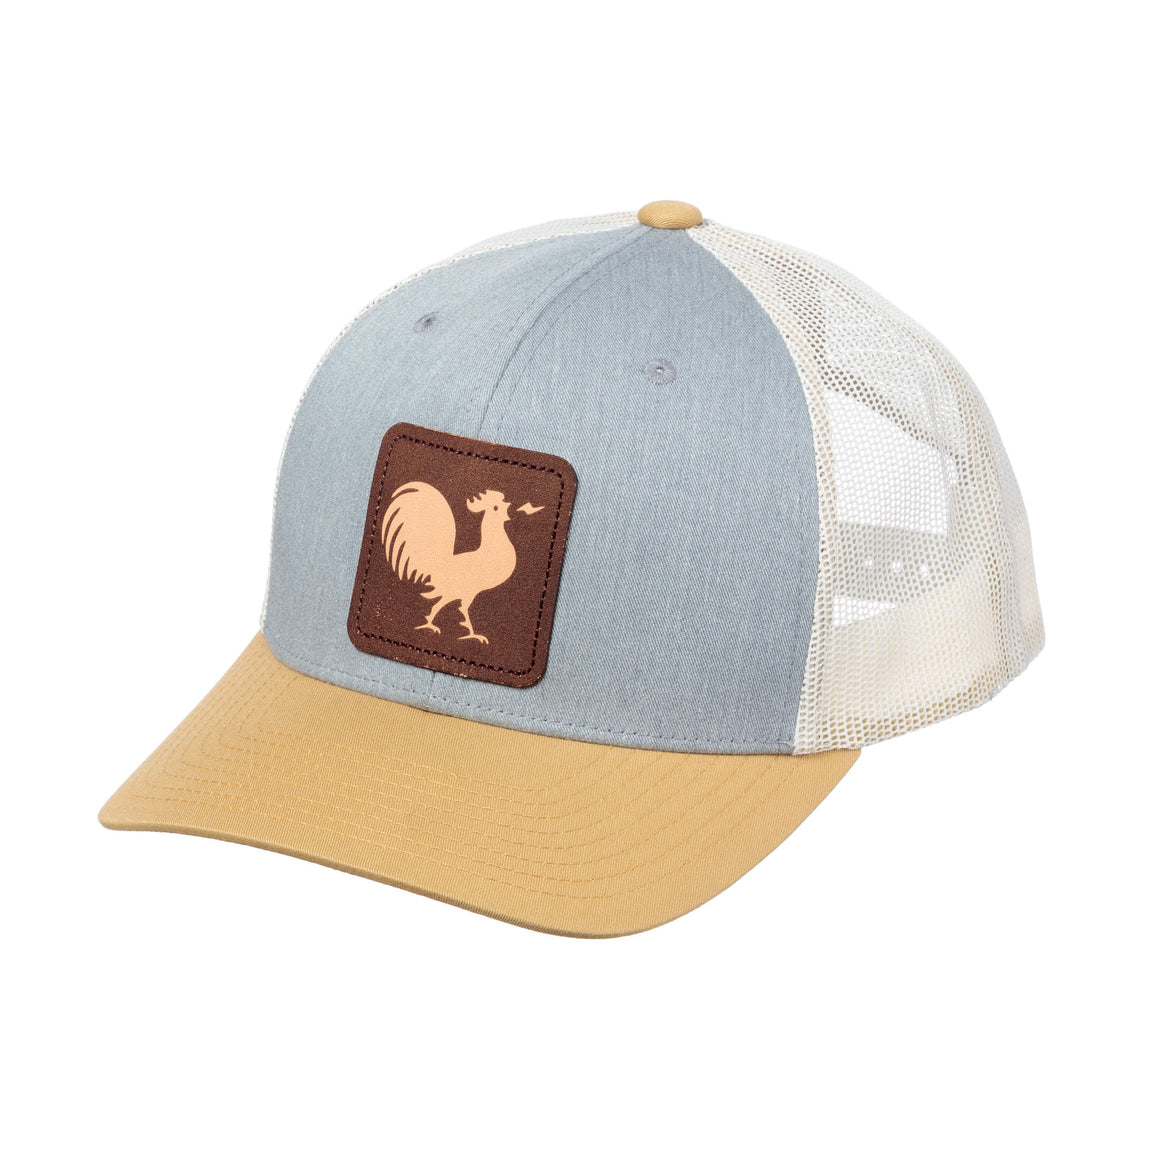 Crowing Rooster Leather Patch Cap